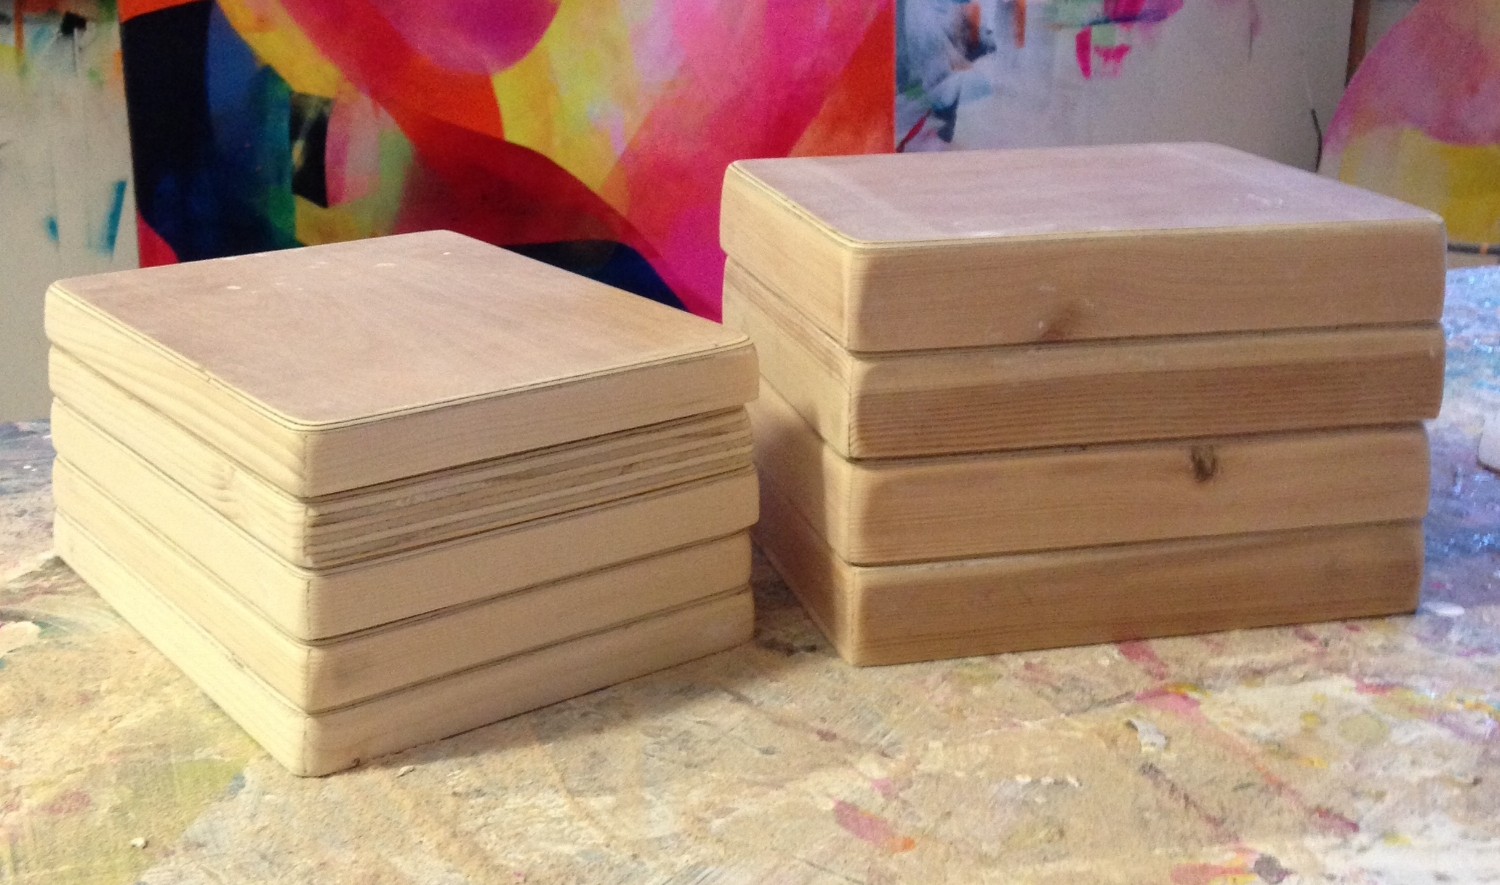 Handmade plywood boxes